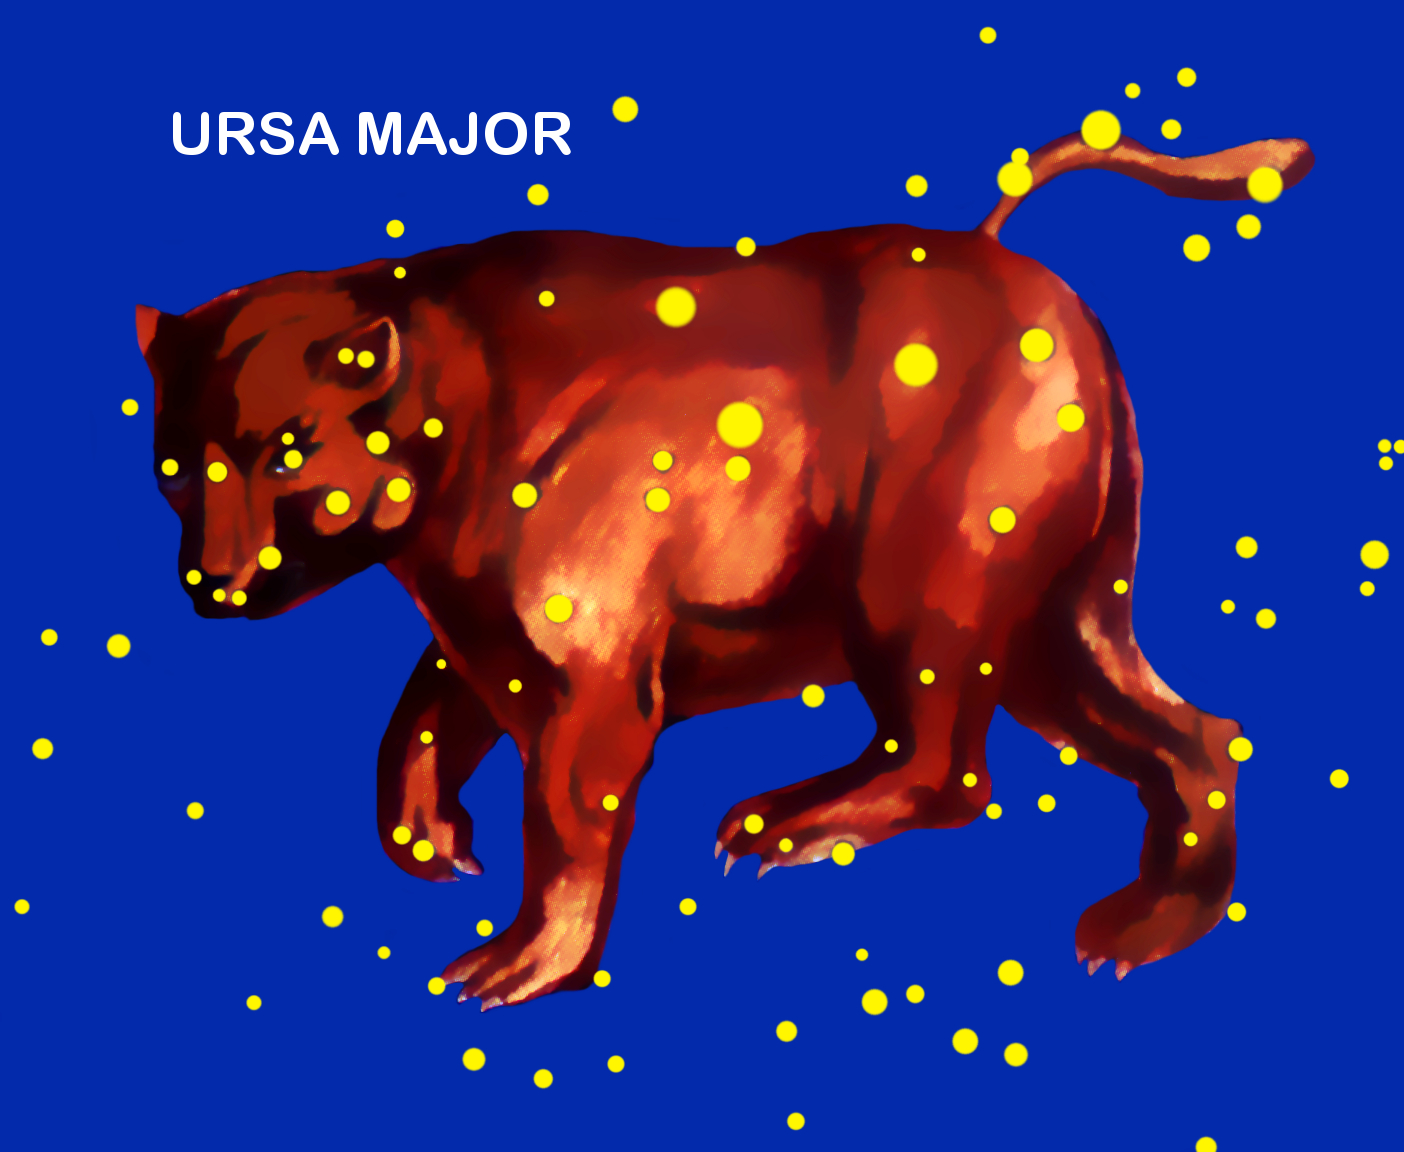 ursa chat sites Voting results number of voters: 1157 motion picture nominee preference counts total votes score 1 2 3 the good dinosaur.